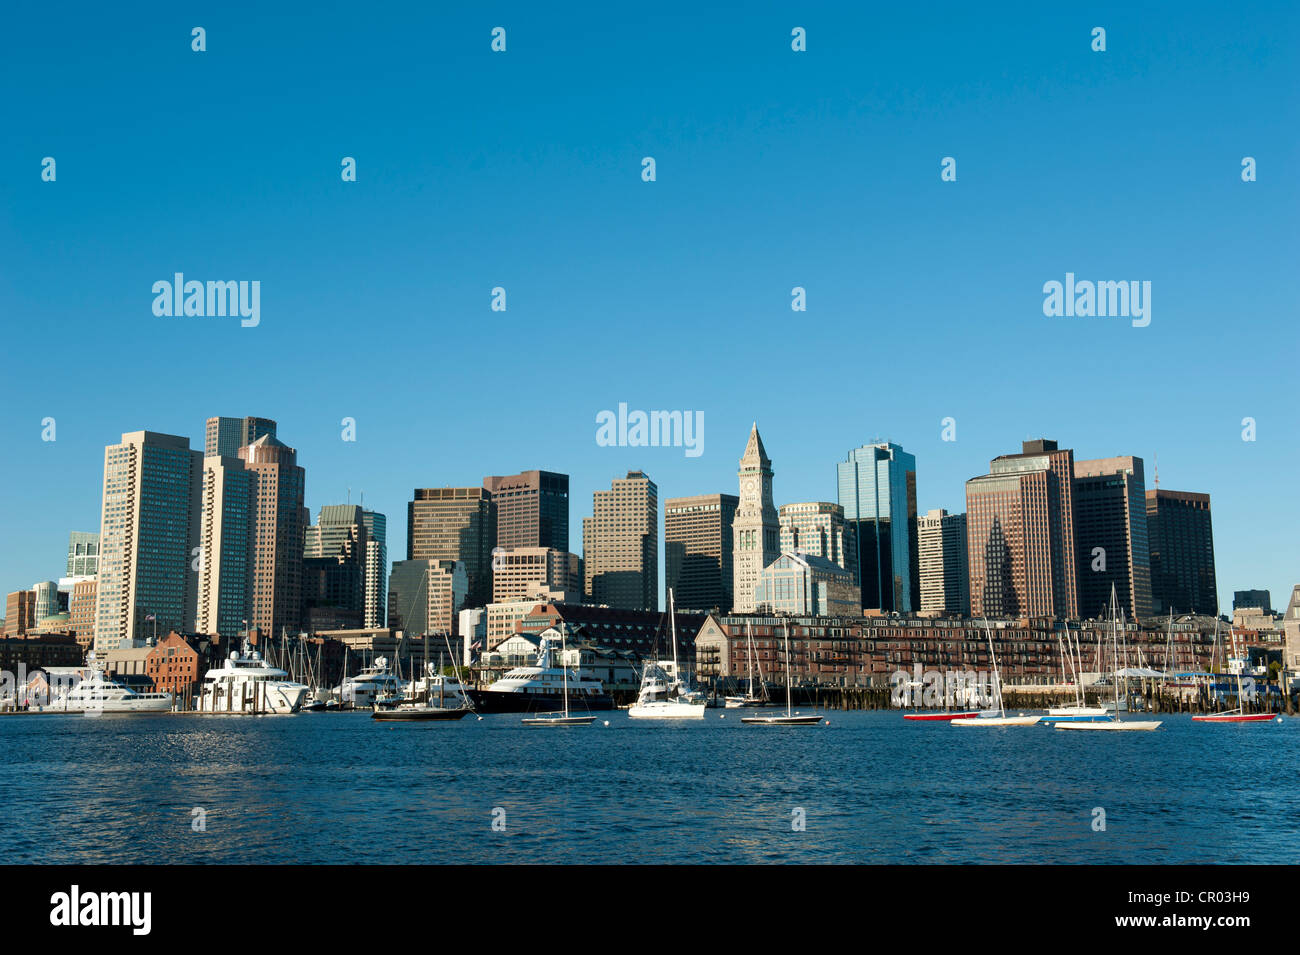 Entire skyline with Custom House Tower, Financial District, Commercial Wharf, view from Boston Harbour, Boston, - Stock Image